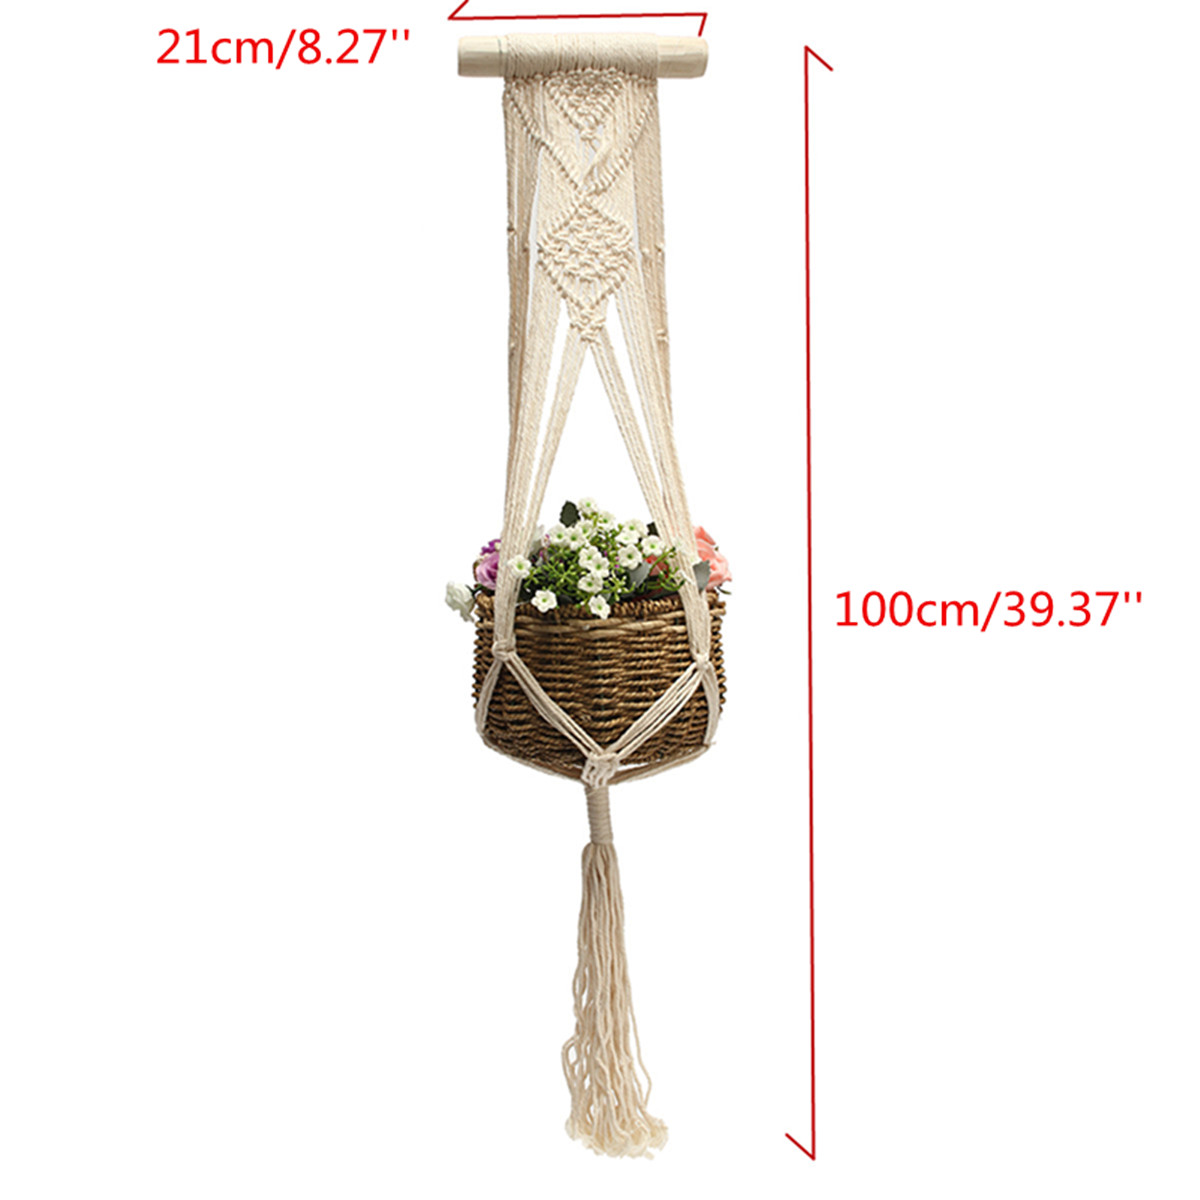 Compare Prices on Plant Holders for Balcony Railings- Online ...